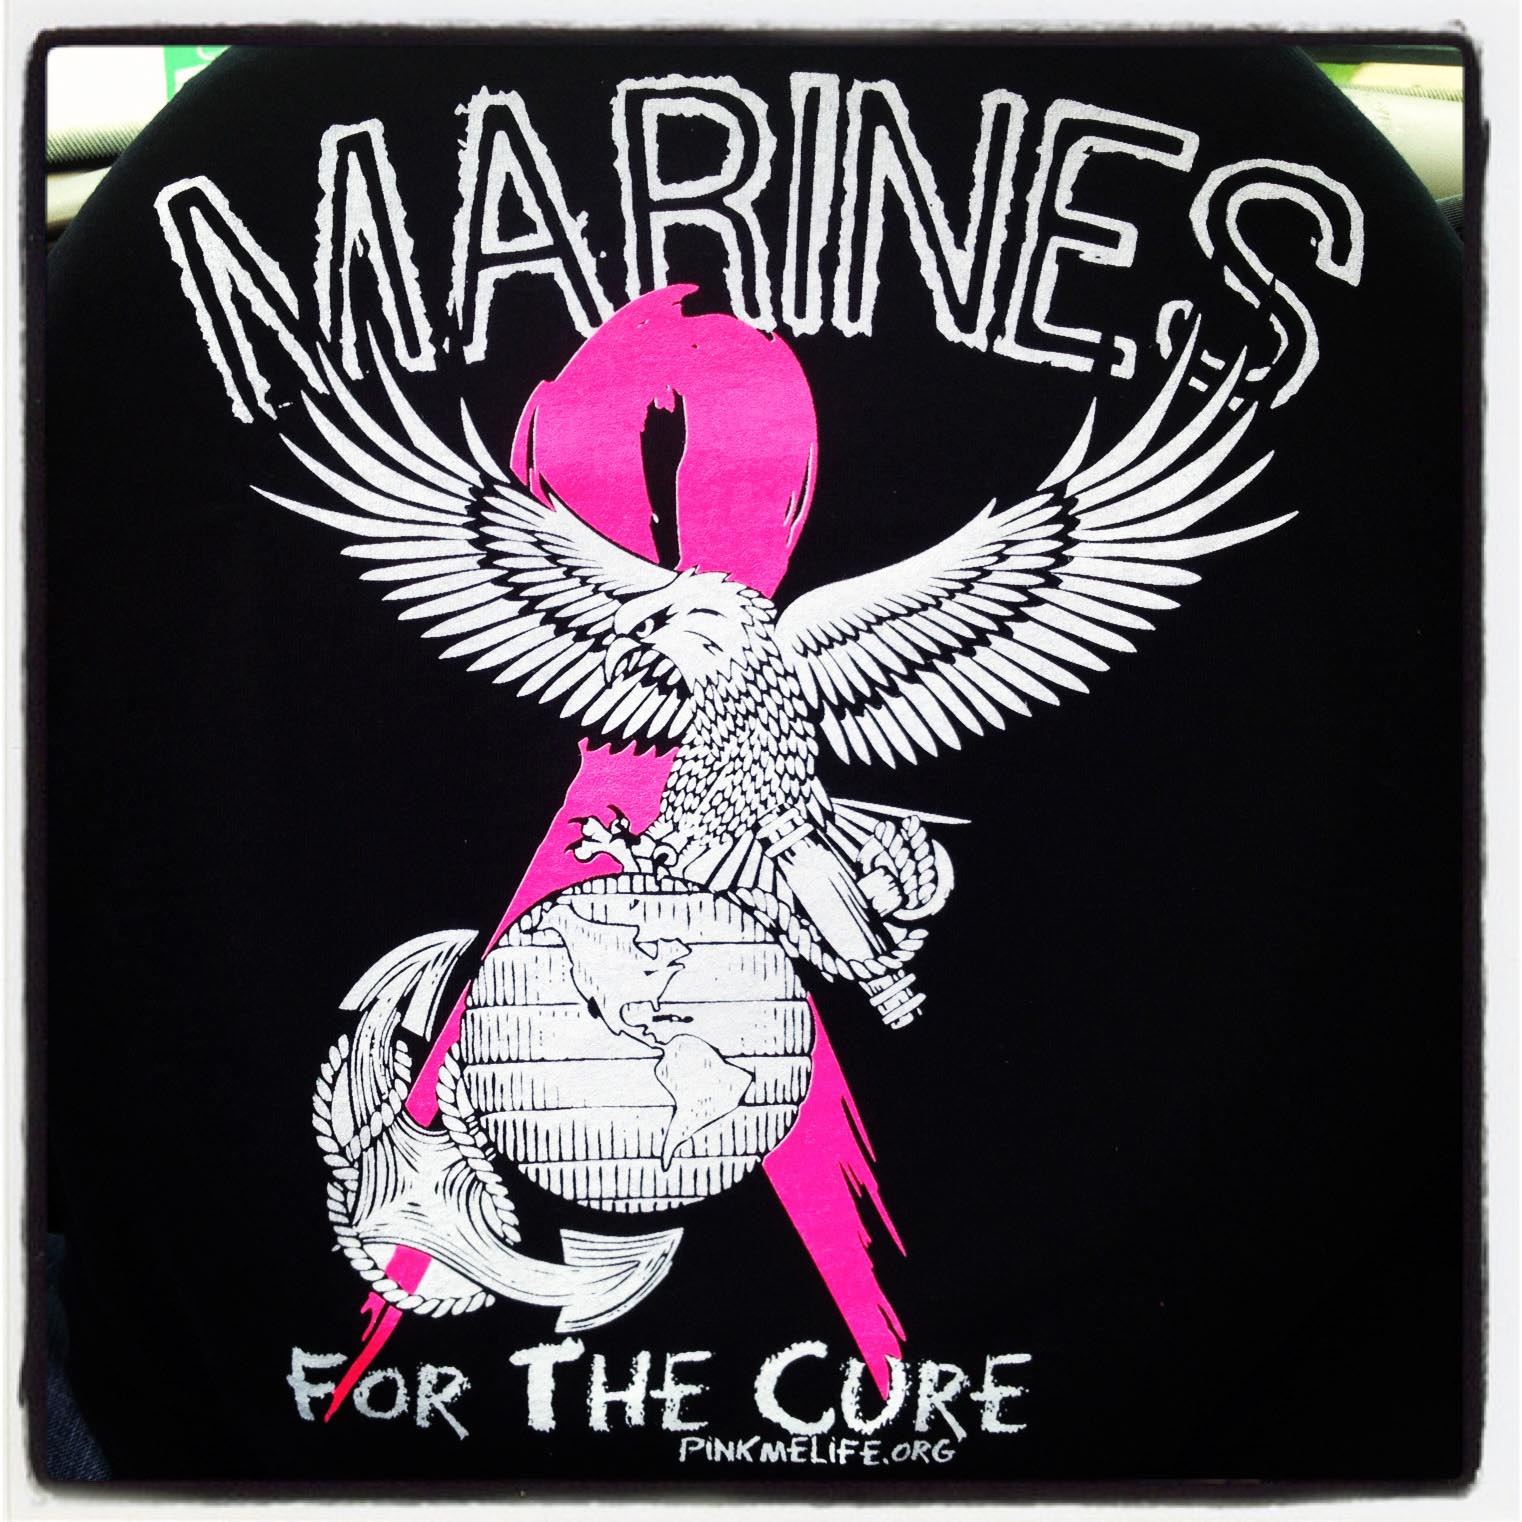 Marines For The Cure